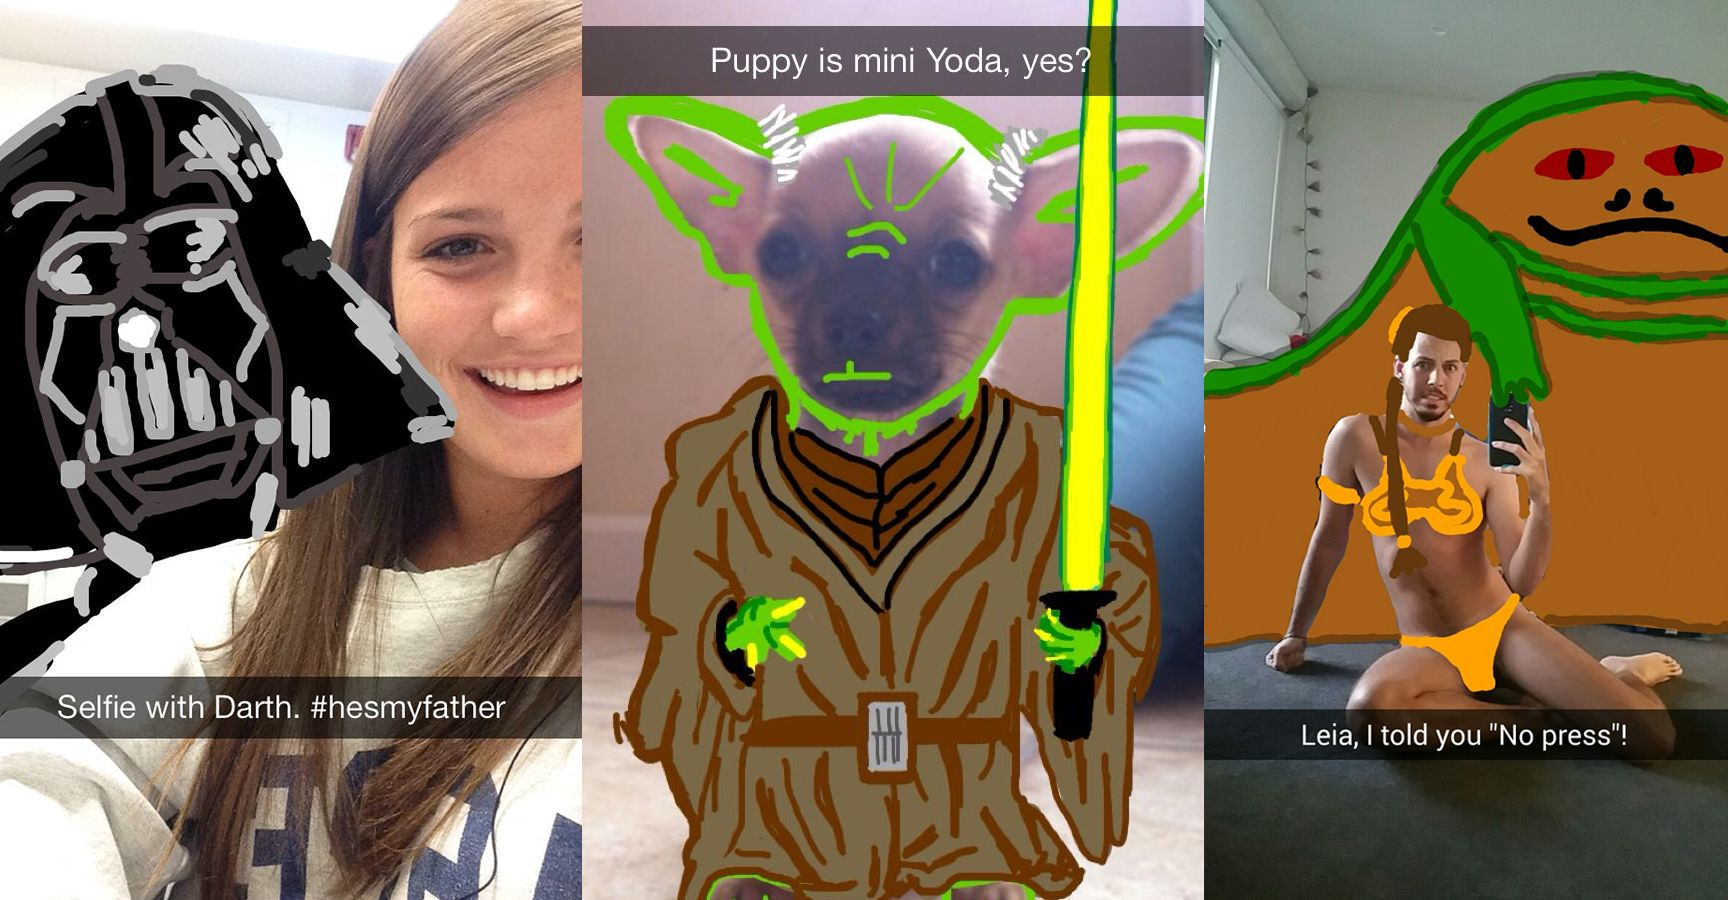 15 Hilarious Snapchat Stories That Will Make Any 'Star Wars' Fan ROFL